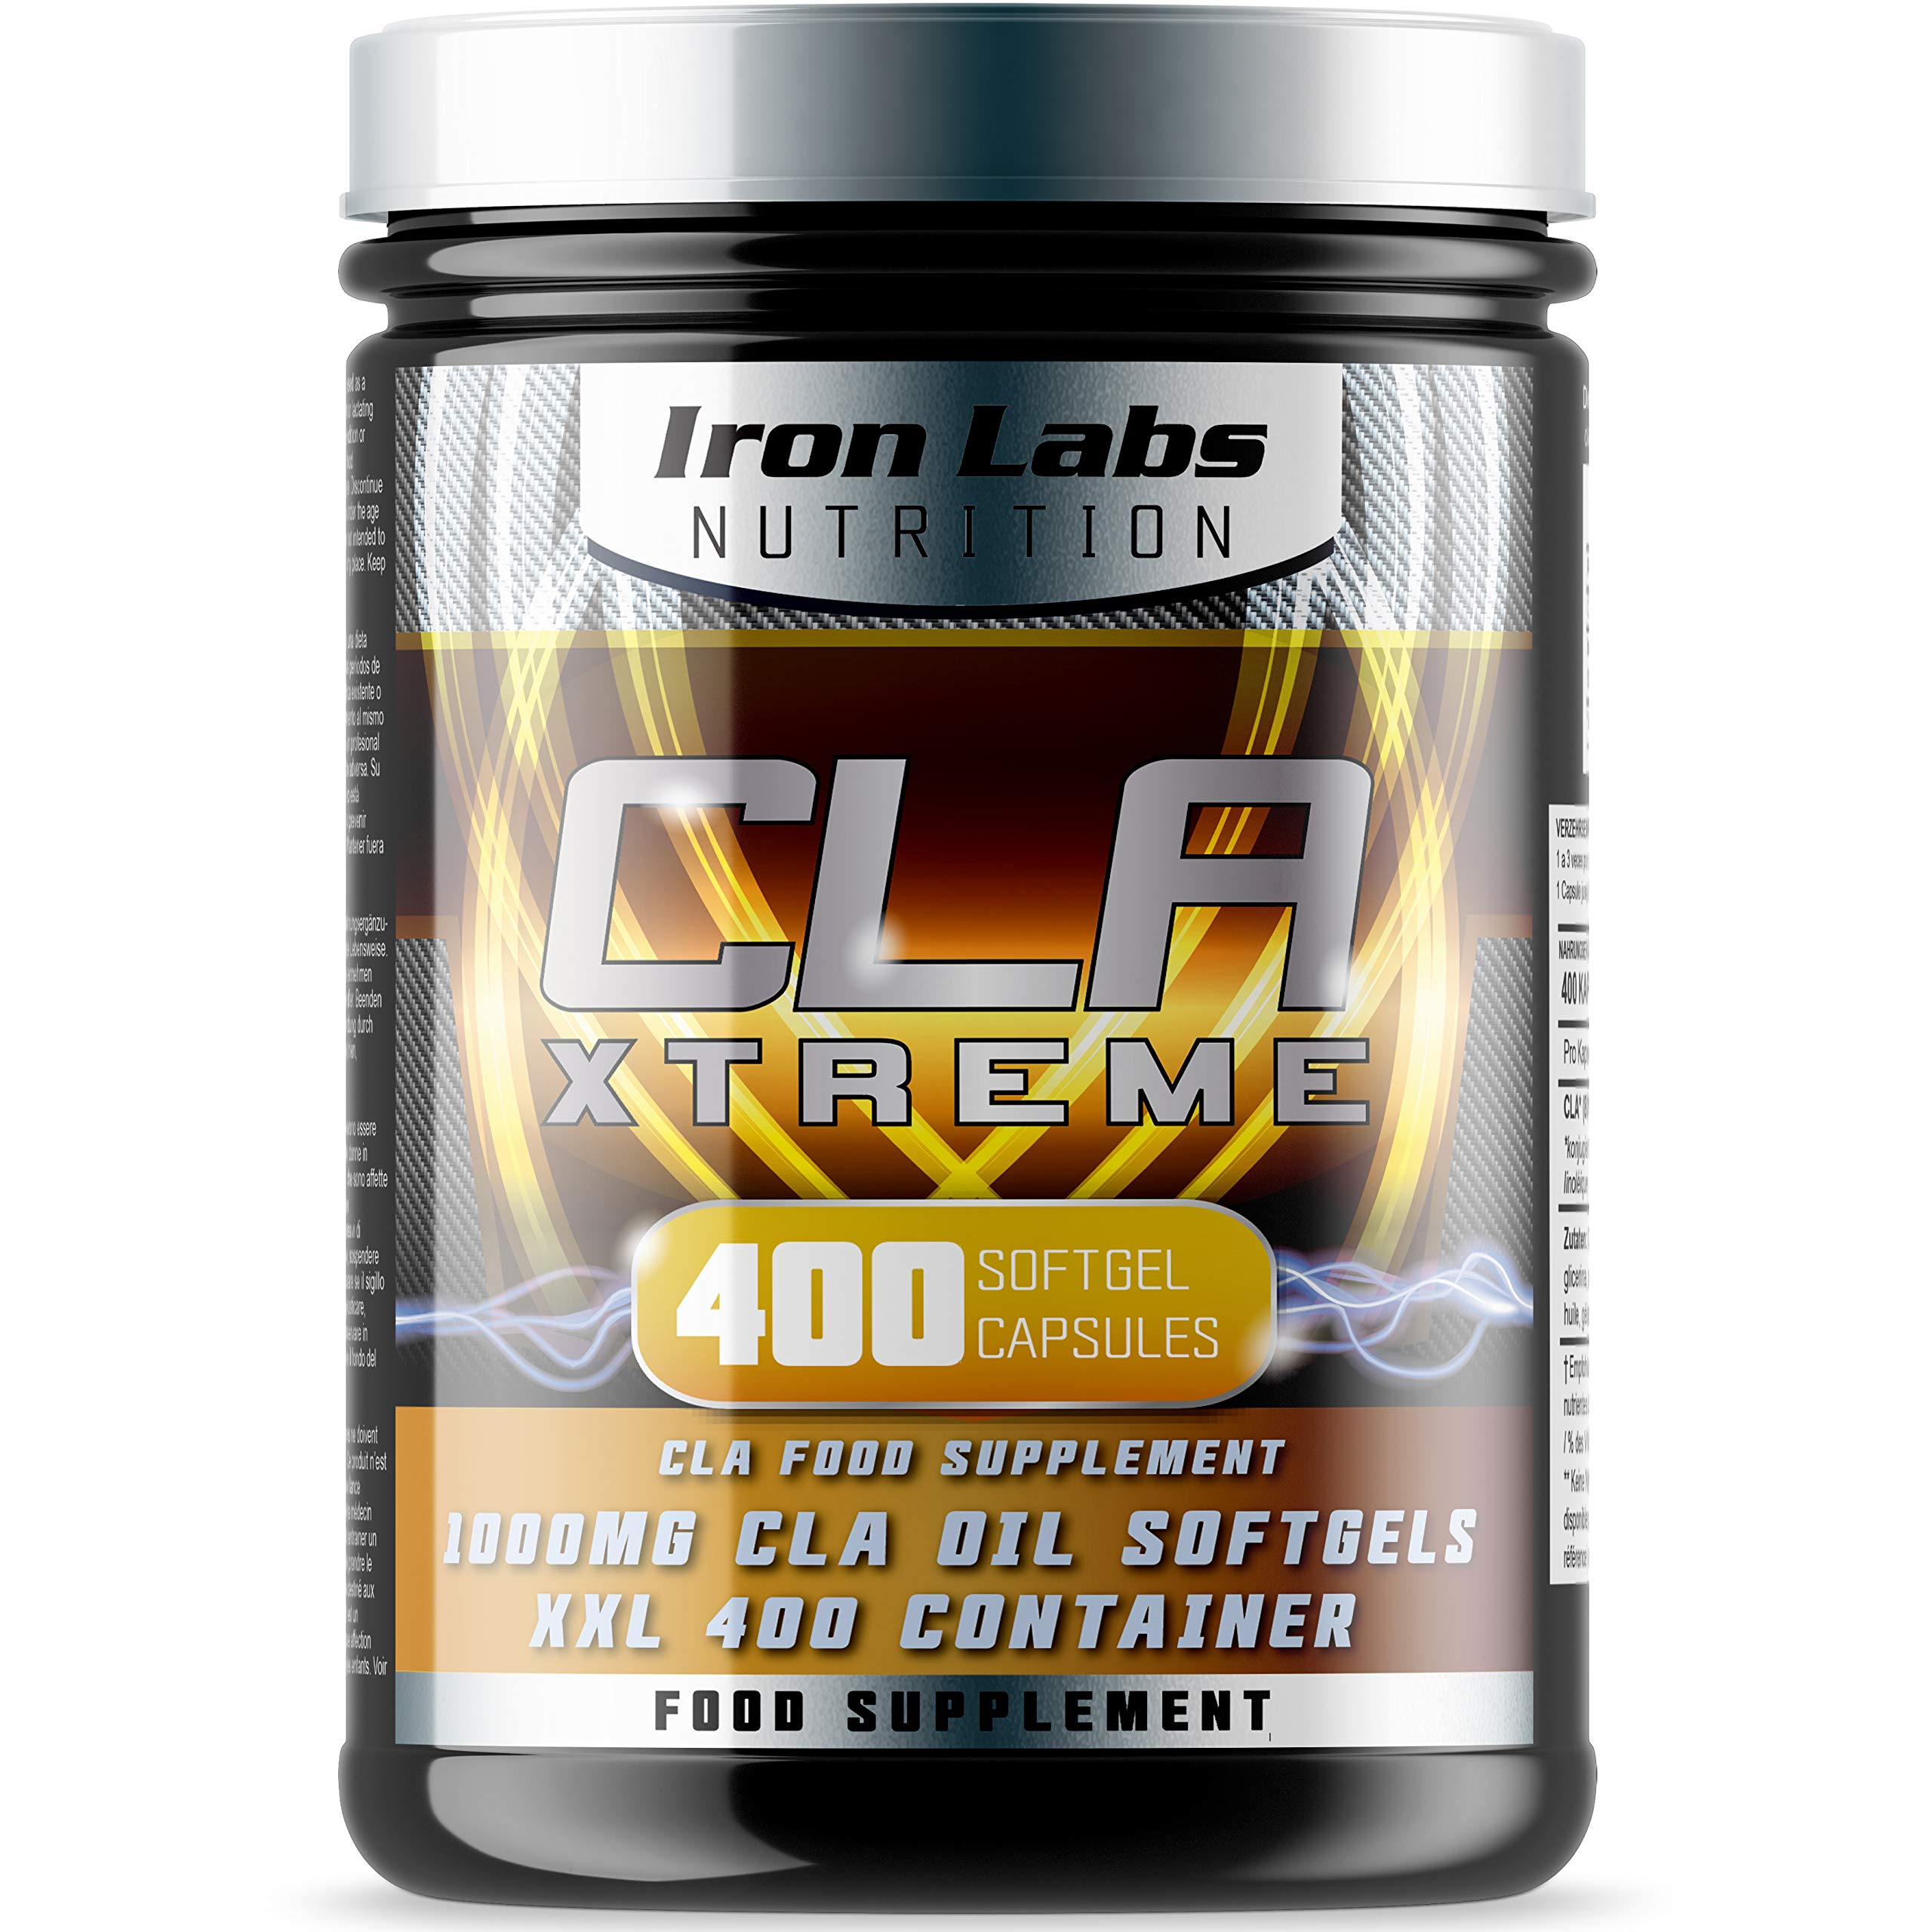 Iron Labs Nutrition, CLA Xtreme XXL - 1000mg x 400 Softgels - CLA supplement featuring 1000mg Conjugated Linoleic Acid Capsules